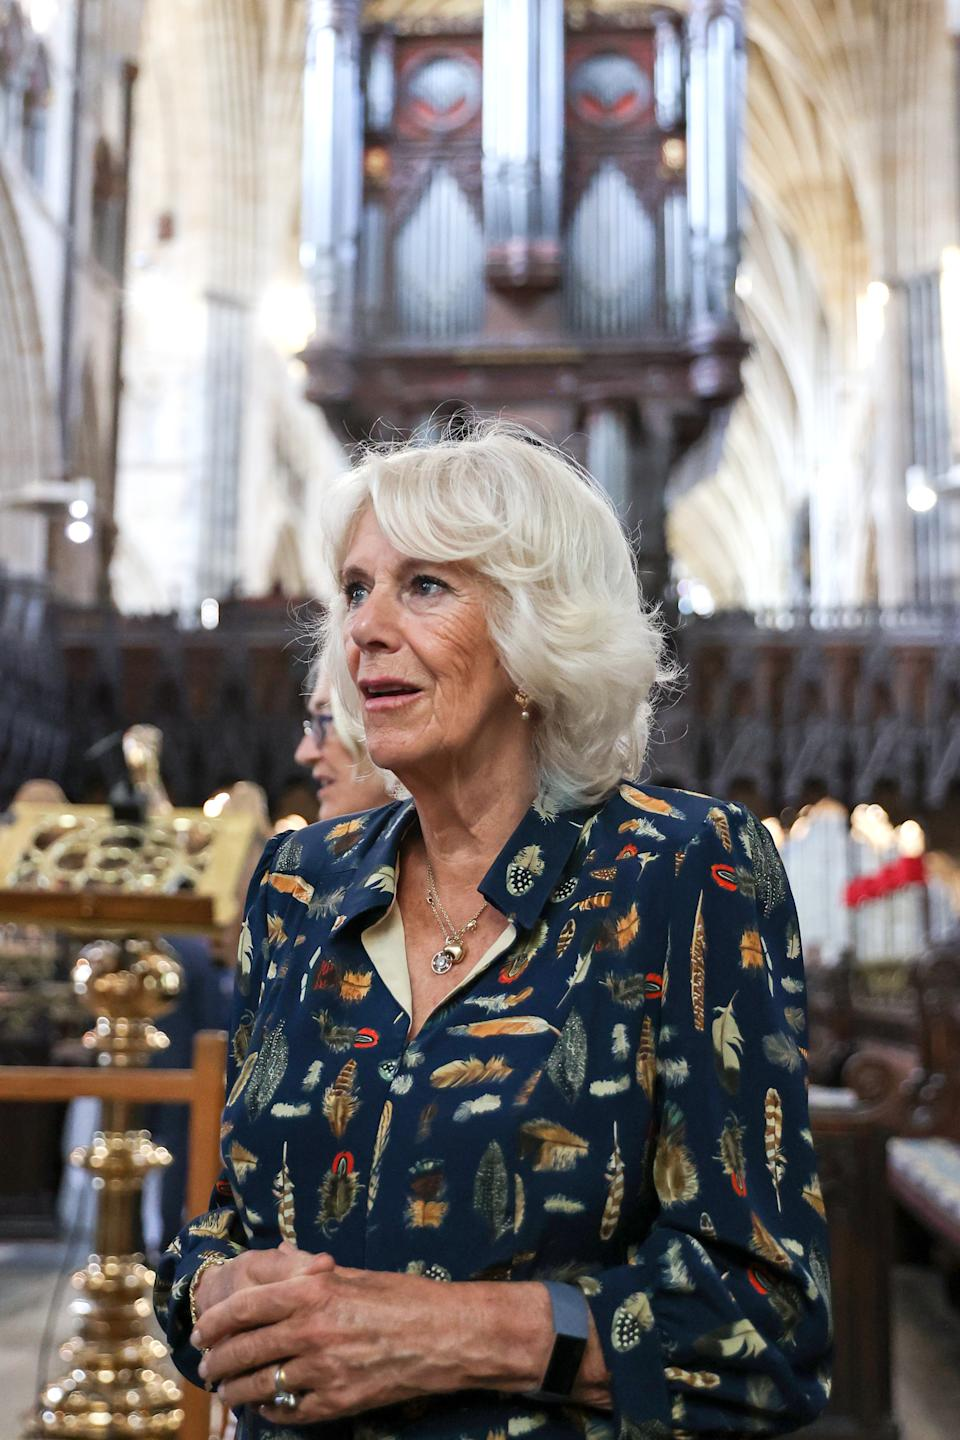 EXETER, UNITED KINGDOM - JULY 19: Camilla, Duchess of Cornwall during a visit to Exeter Cathedral on July 19, 2021 in Exeter, United Kingdom. Founded in 1050, The Cathedral continues to offer daily Christian worship and choral music, alongside its roles as a community hub, heritage destination and venue for concerts and events. It is home to an extensive library and archive, housing important treasures such as the Exeter Book – thought to be the world's oldest surviving book of English literature. The visit celebrates the city's designation as a UNESCO City of Literature and launch of The Royal College of Nursing's Prince of Wales Nursing Cadet Scheme in England.  (Photo by Chris Jackson - WPA Pool/Getty Images)